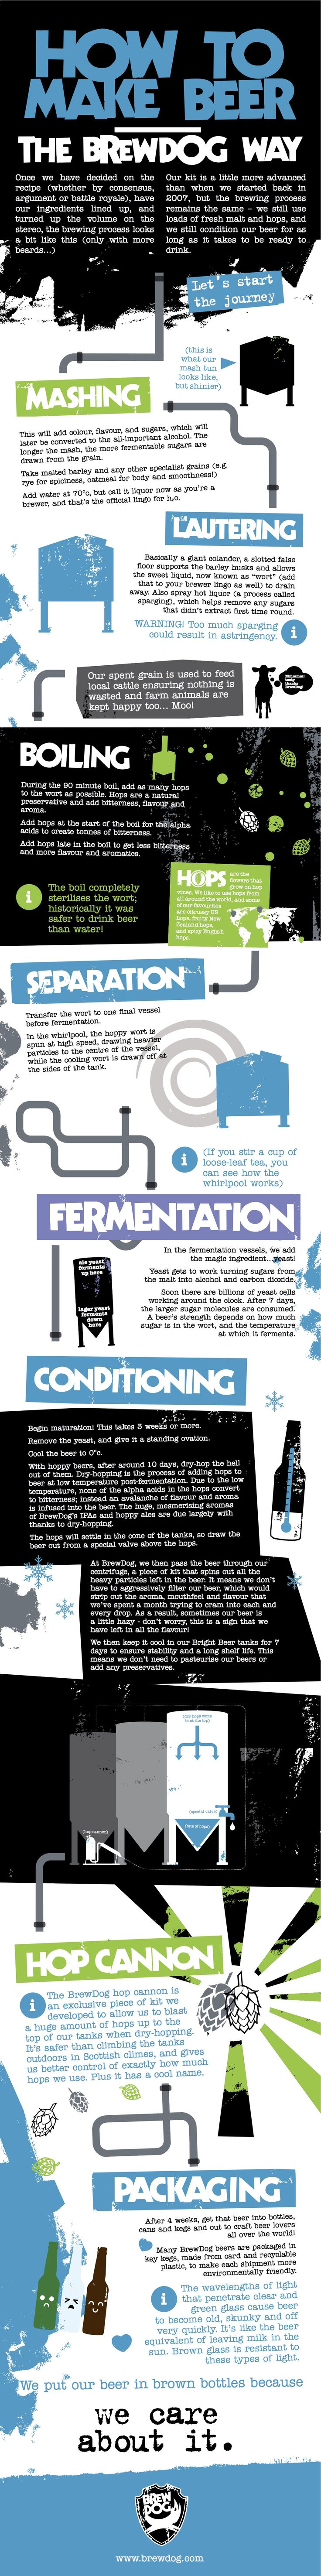 INFOGRAPHIC: How to make beer the BrewDog way!